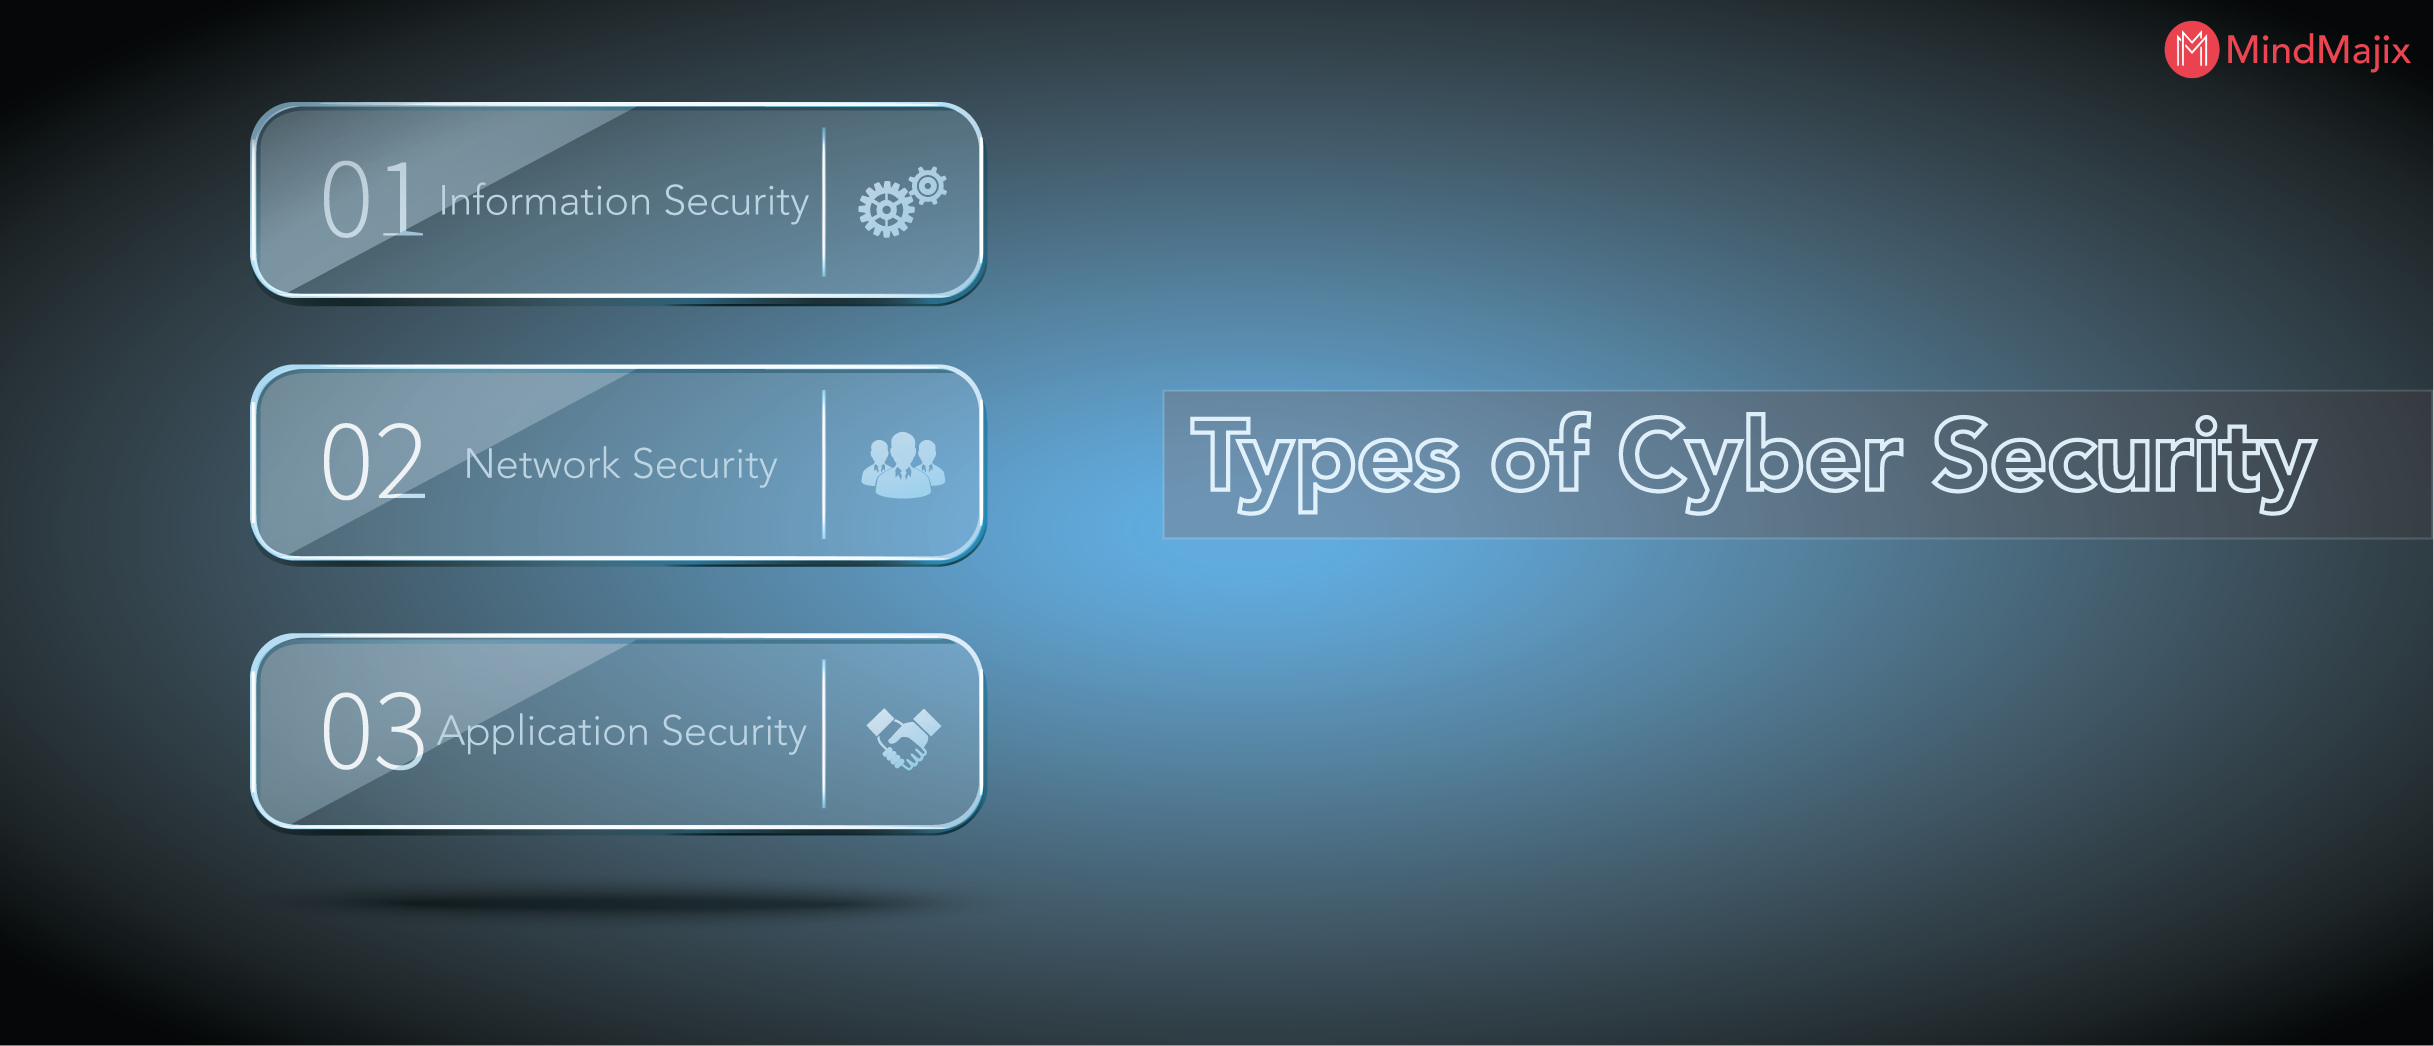 Types of Cyber Security